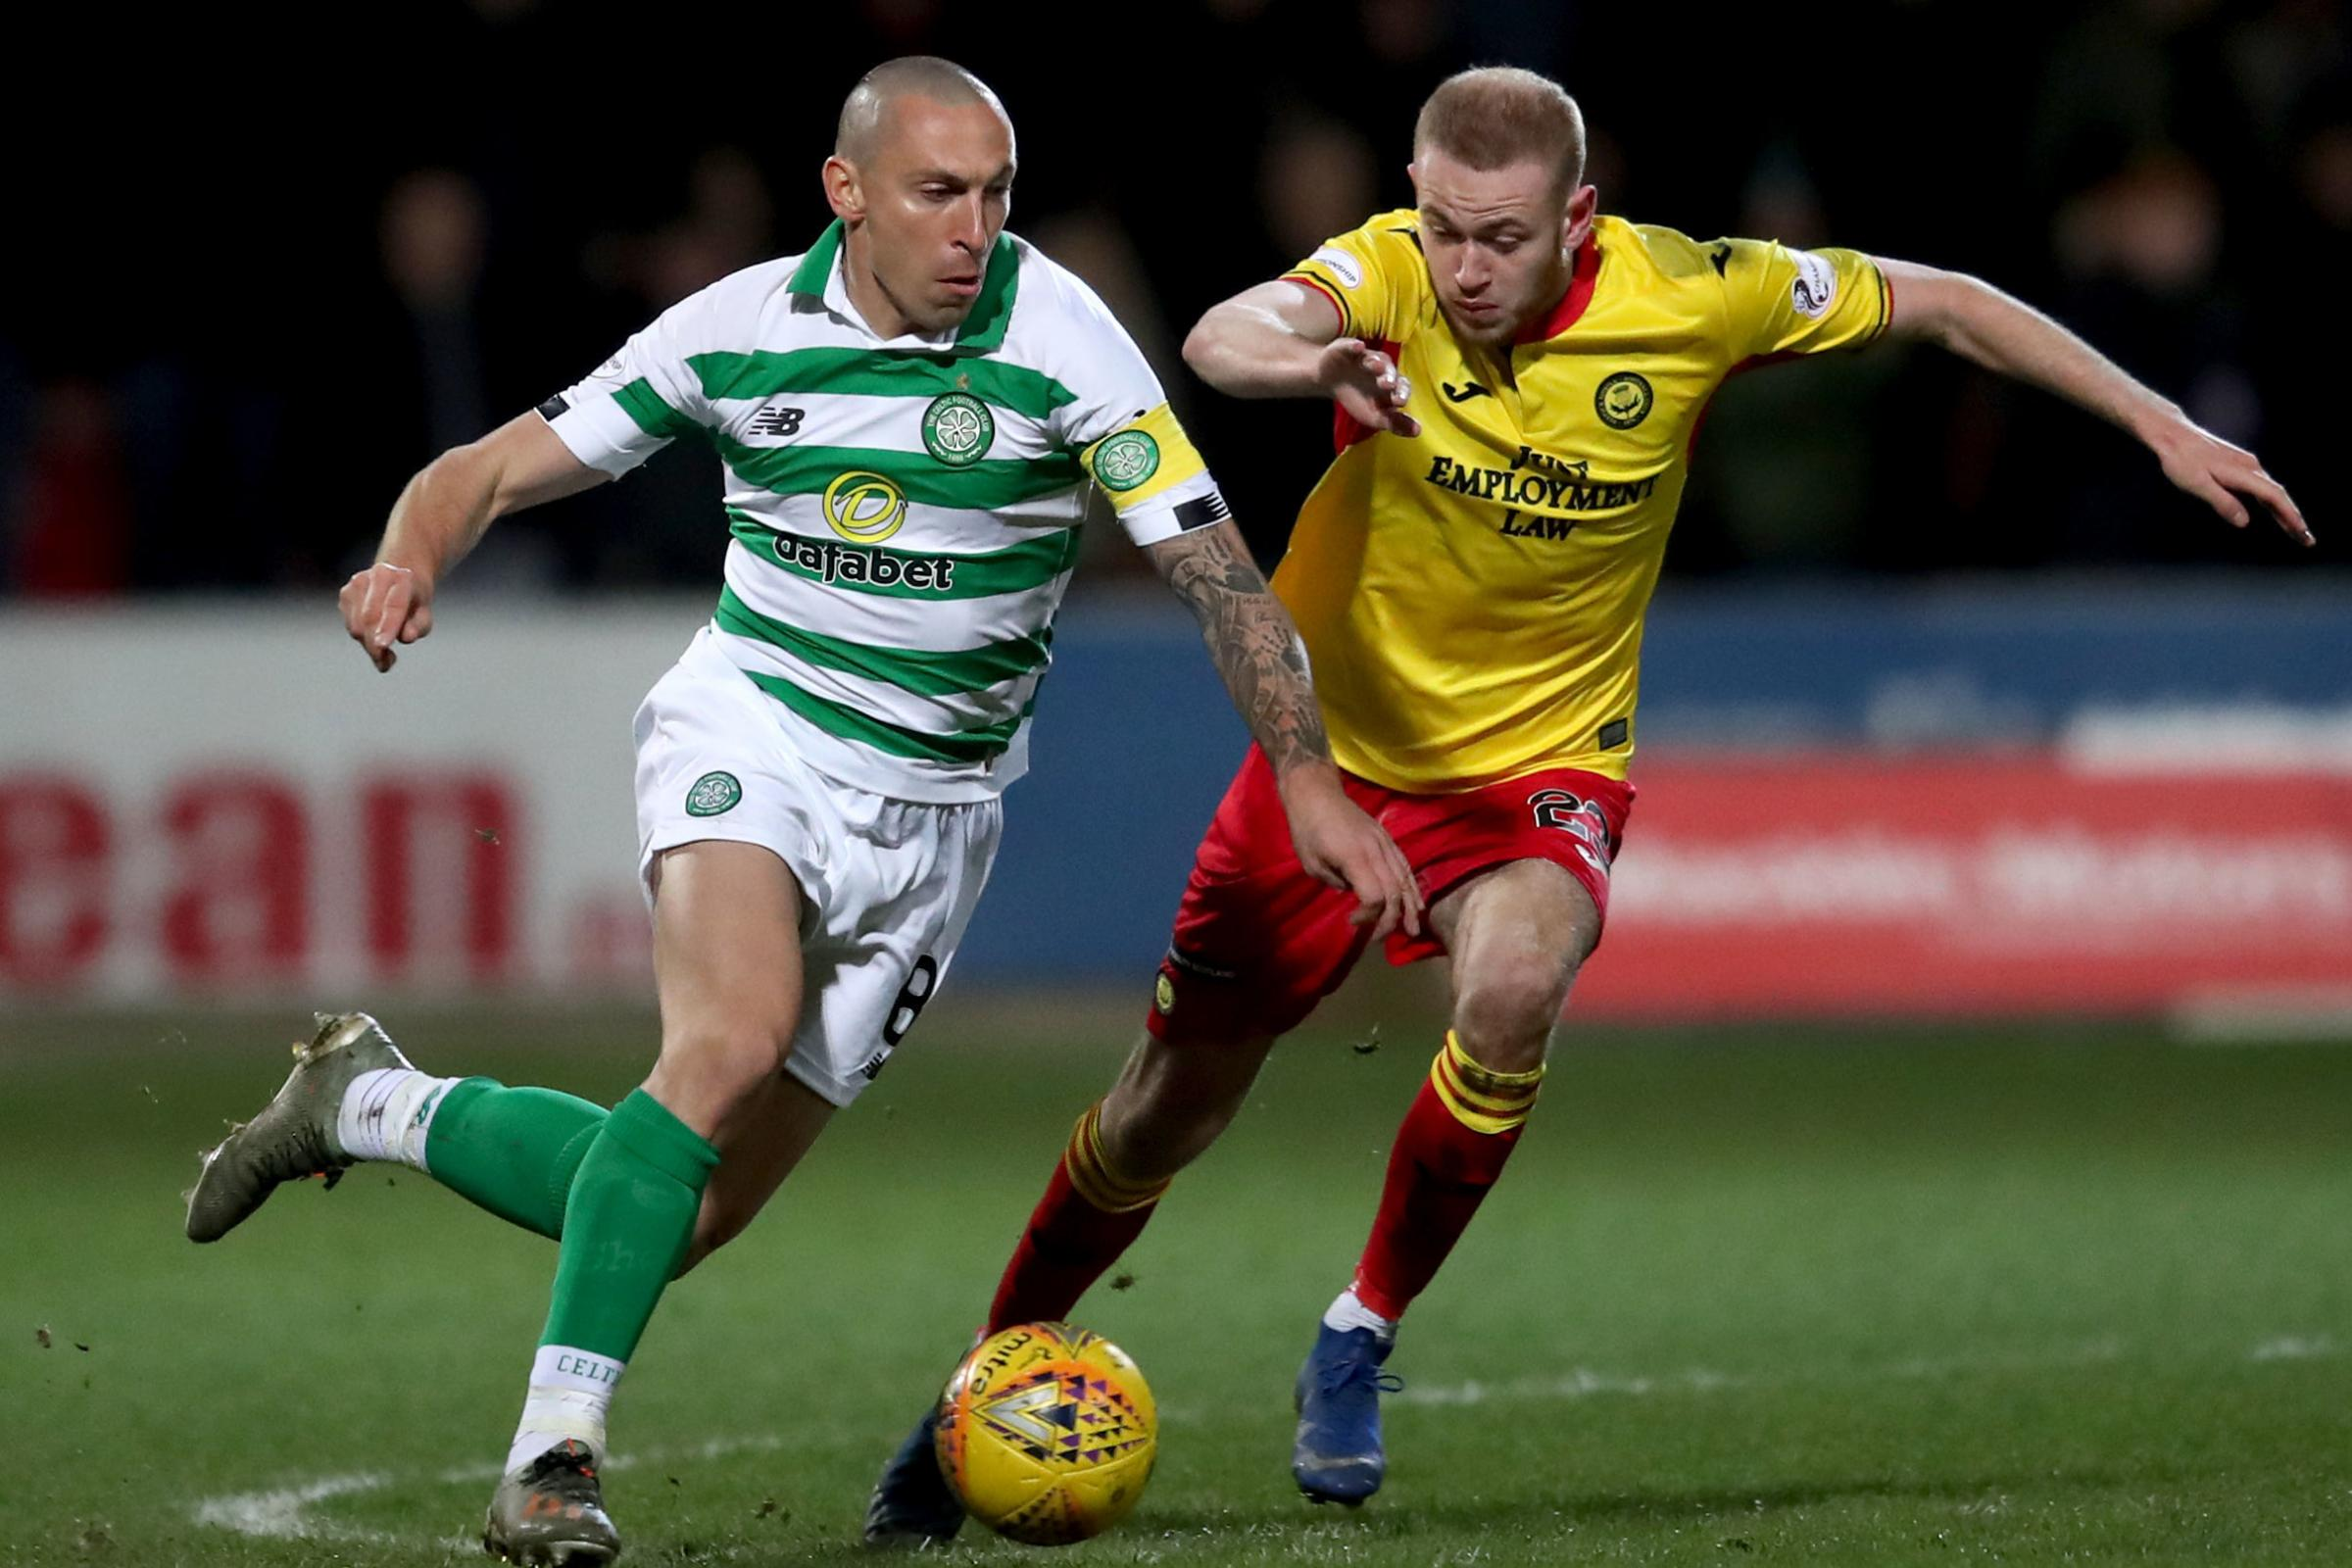 Partick Thistle 1, Celtic 2: Five things we learned